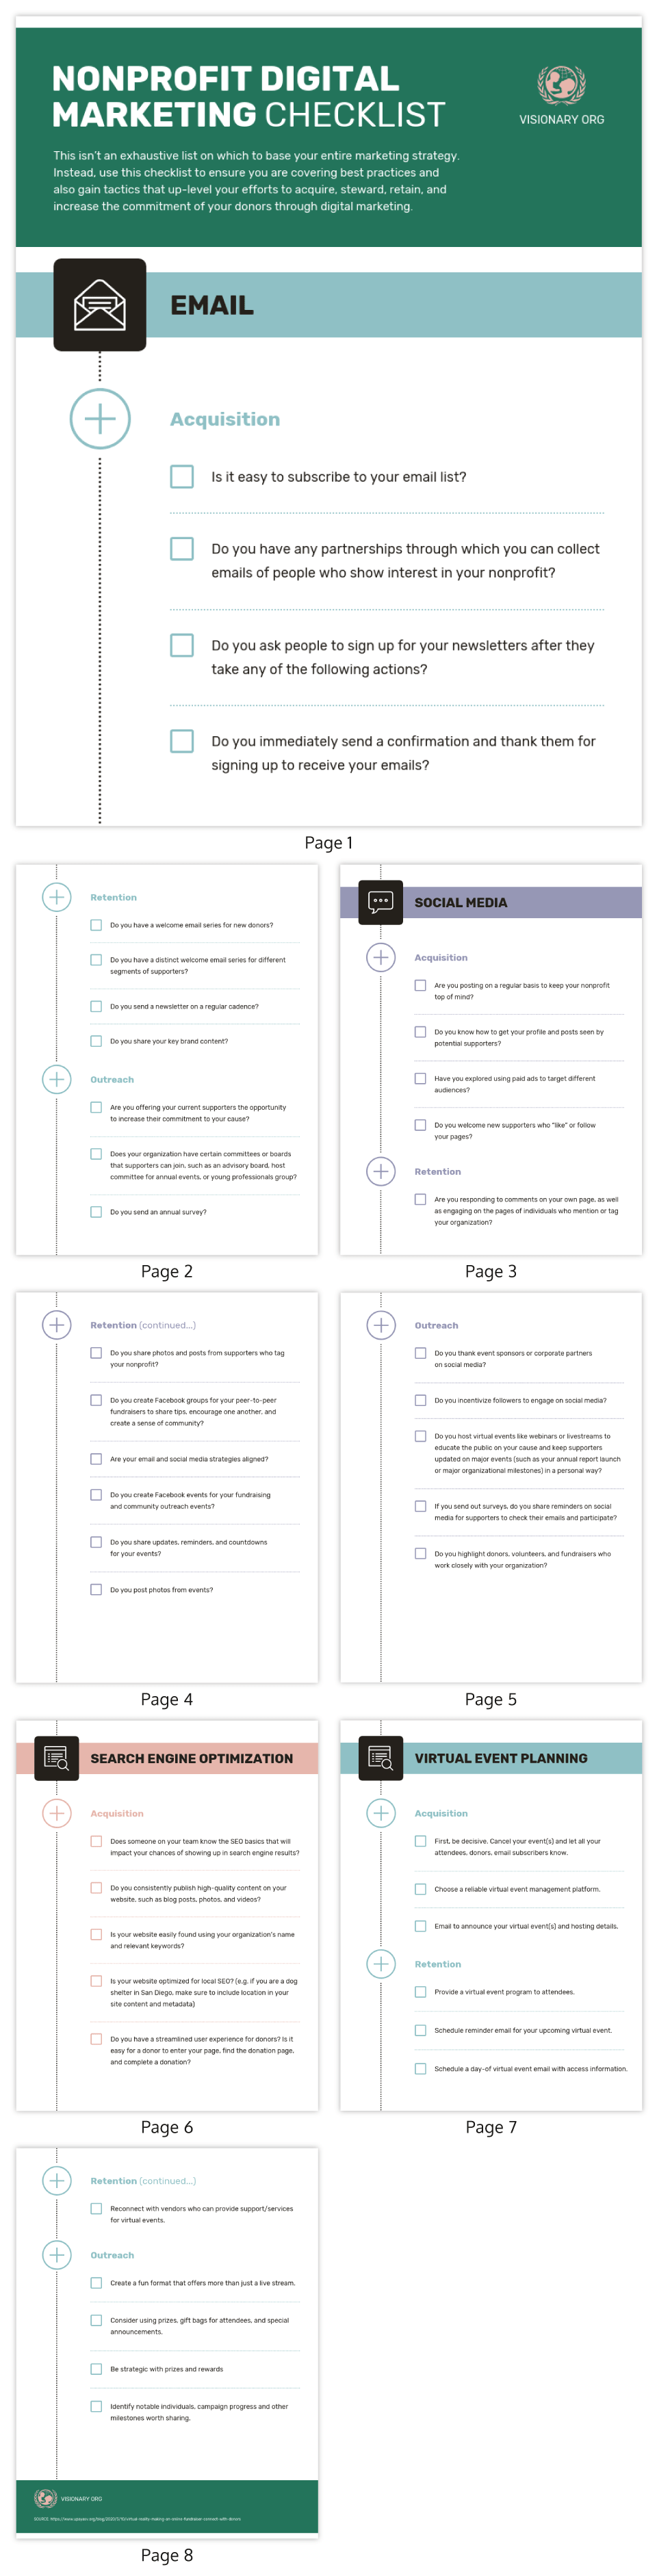 Nonprofit Digital Marketing Checklist Template